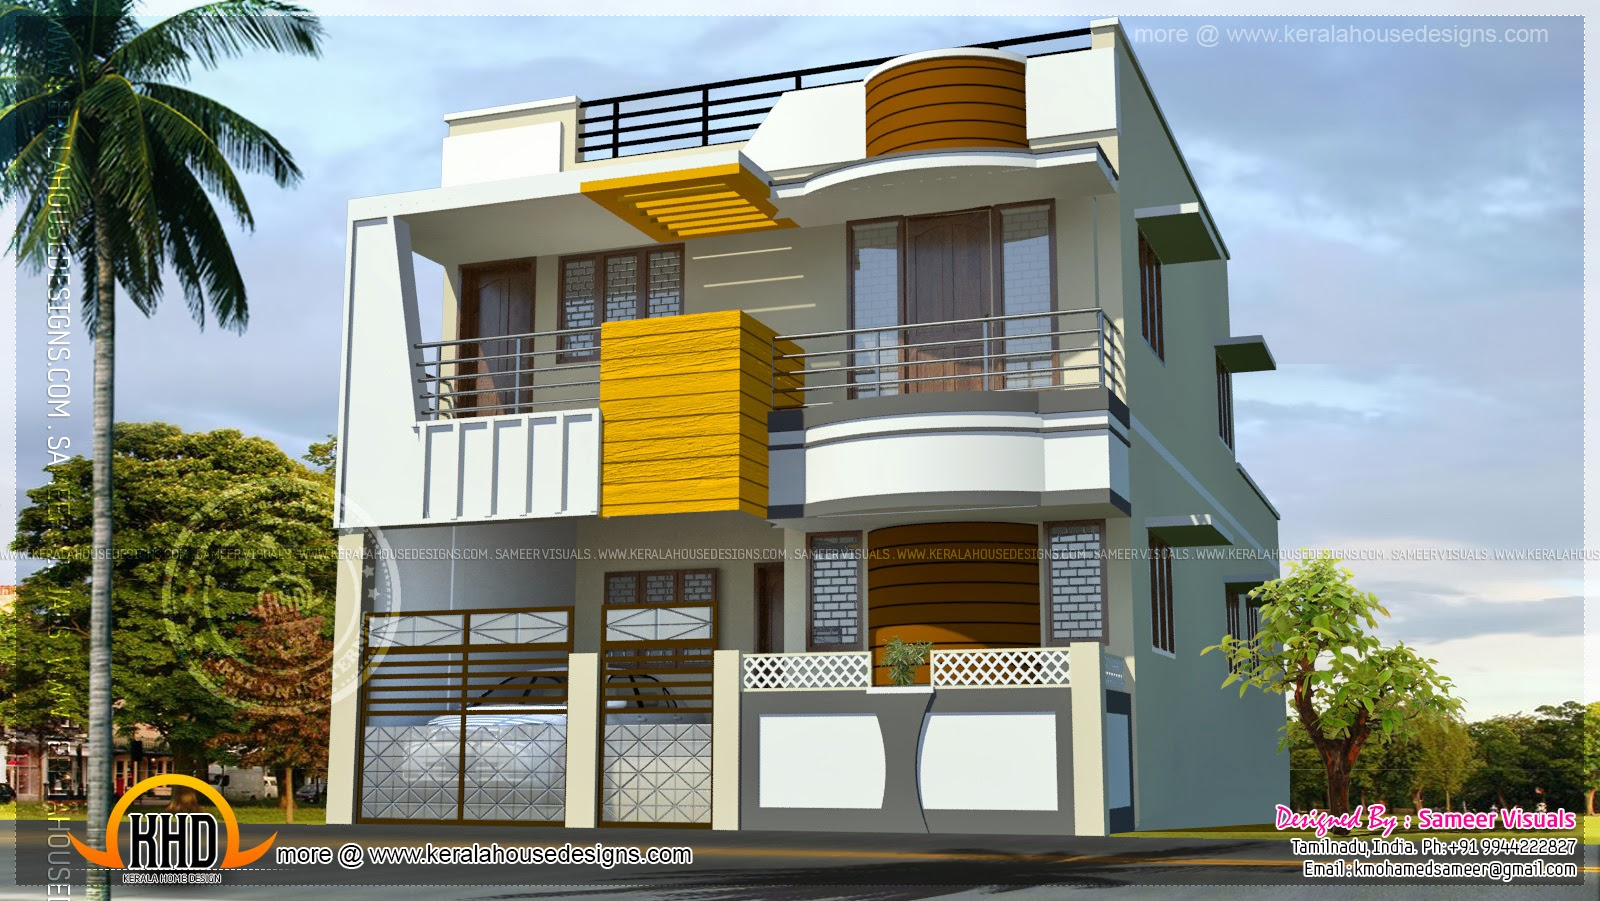 January 2014 kerala home design and floor plans for Tamilnadu house designs photos